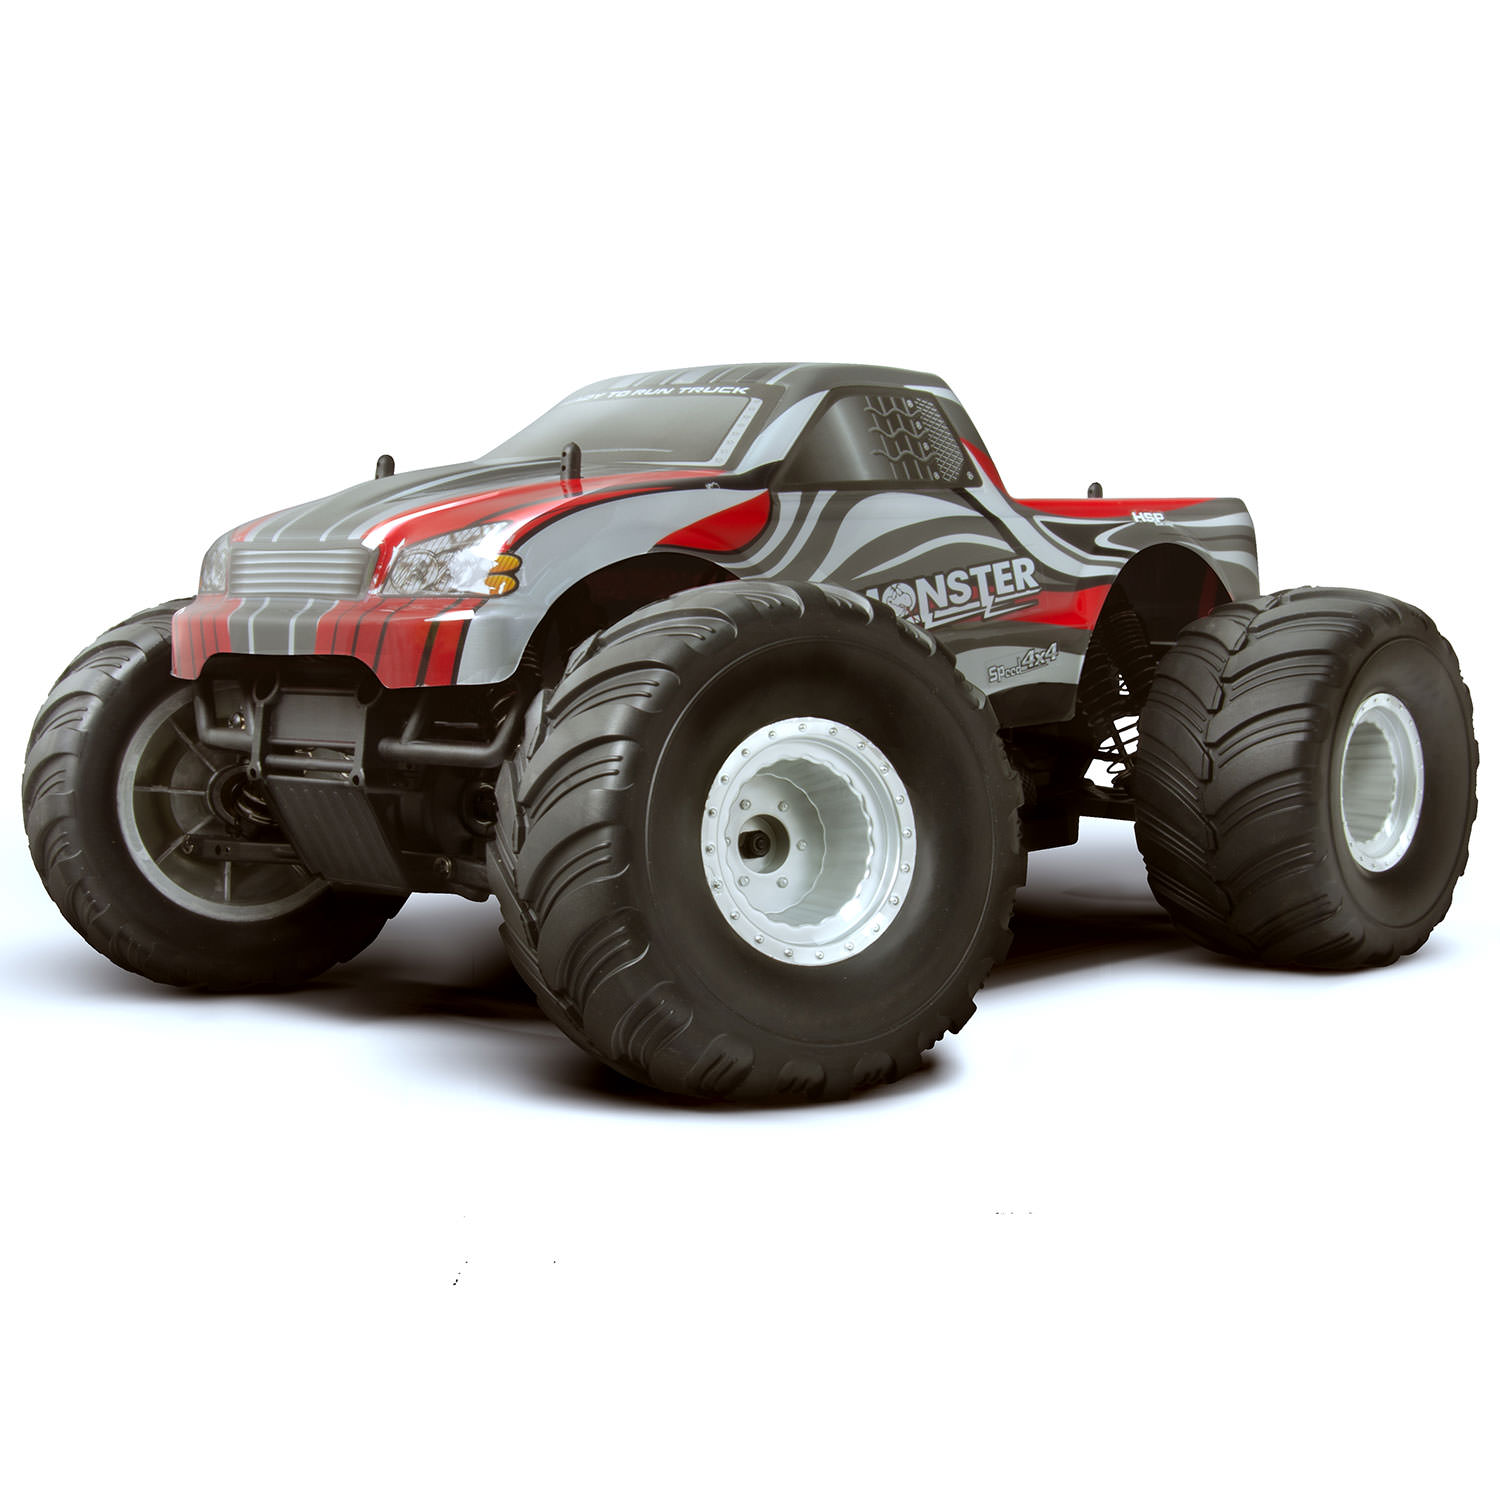 Hsp Rc Truck Nitro Gas Power Off Road Monster Truck 94188: HSP 94111-88022 1/10 Red RC Monster Truck At Hobby Warehouse